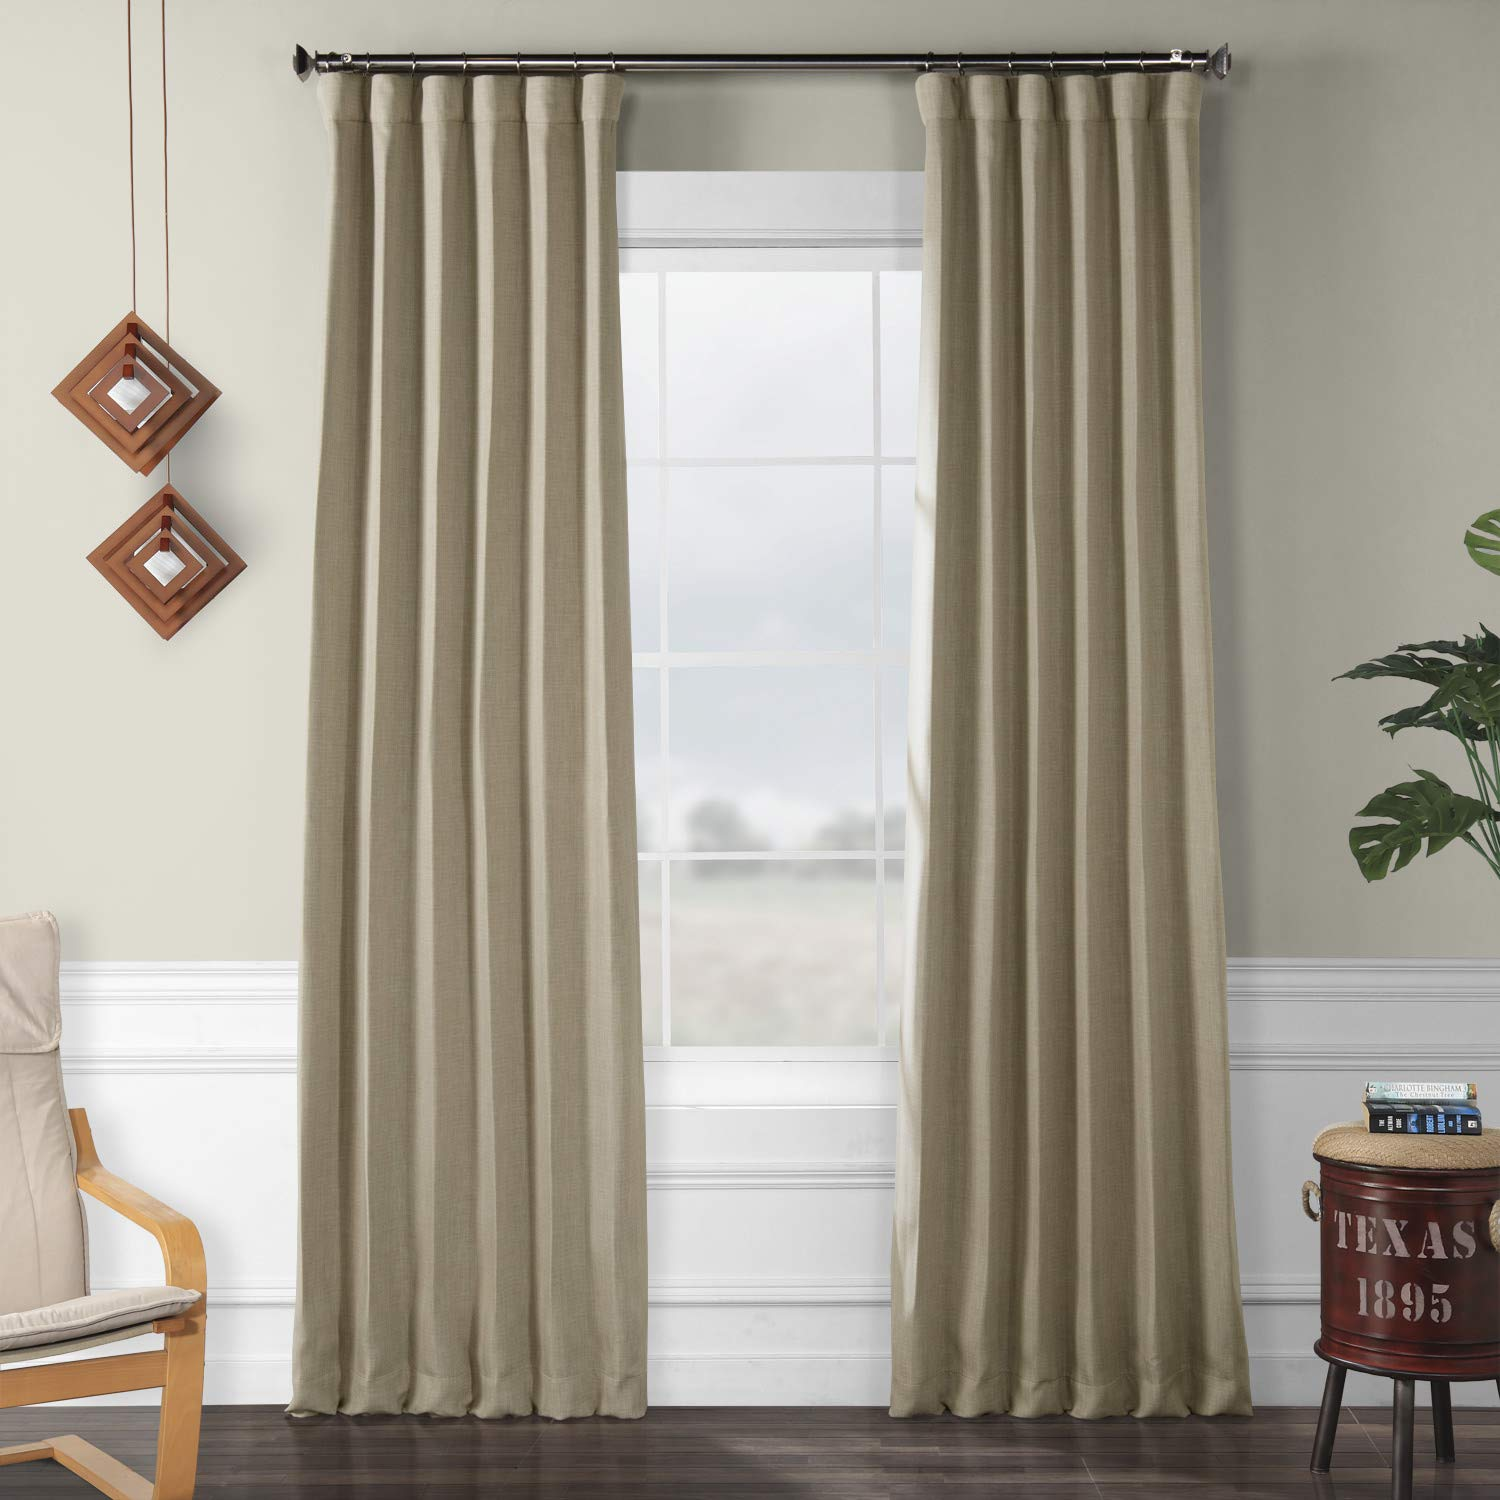 HPD HALF PRICE DRAPES BOCH-LN18542-96 Faux Linen Blackout Room Darkening Curtain 50 X 96,Thatched Tan by HPD Half Price Drapes